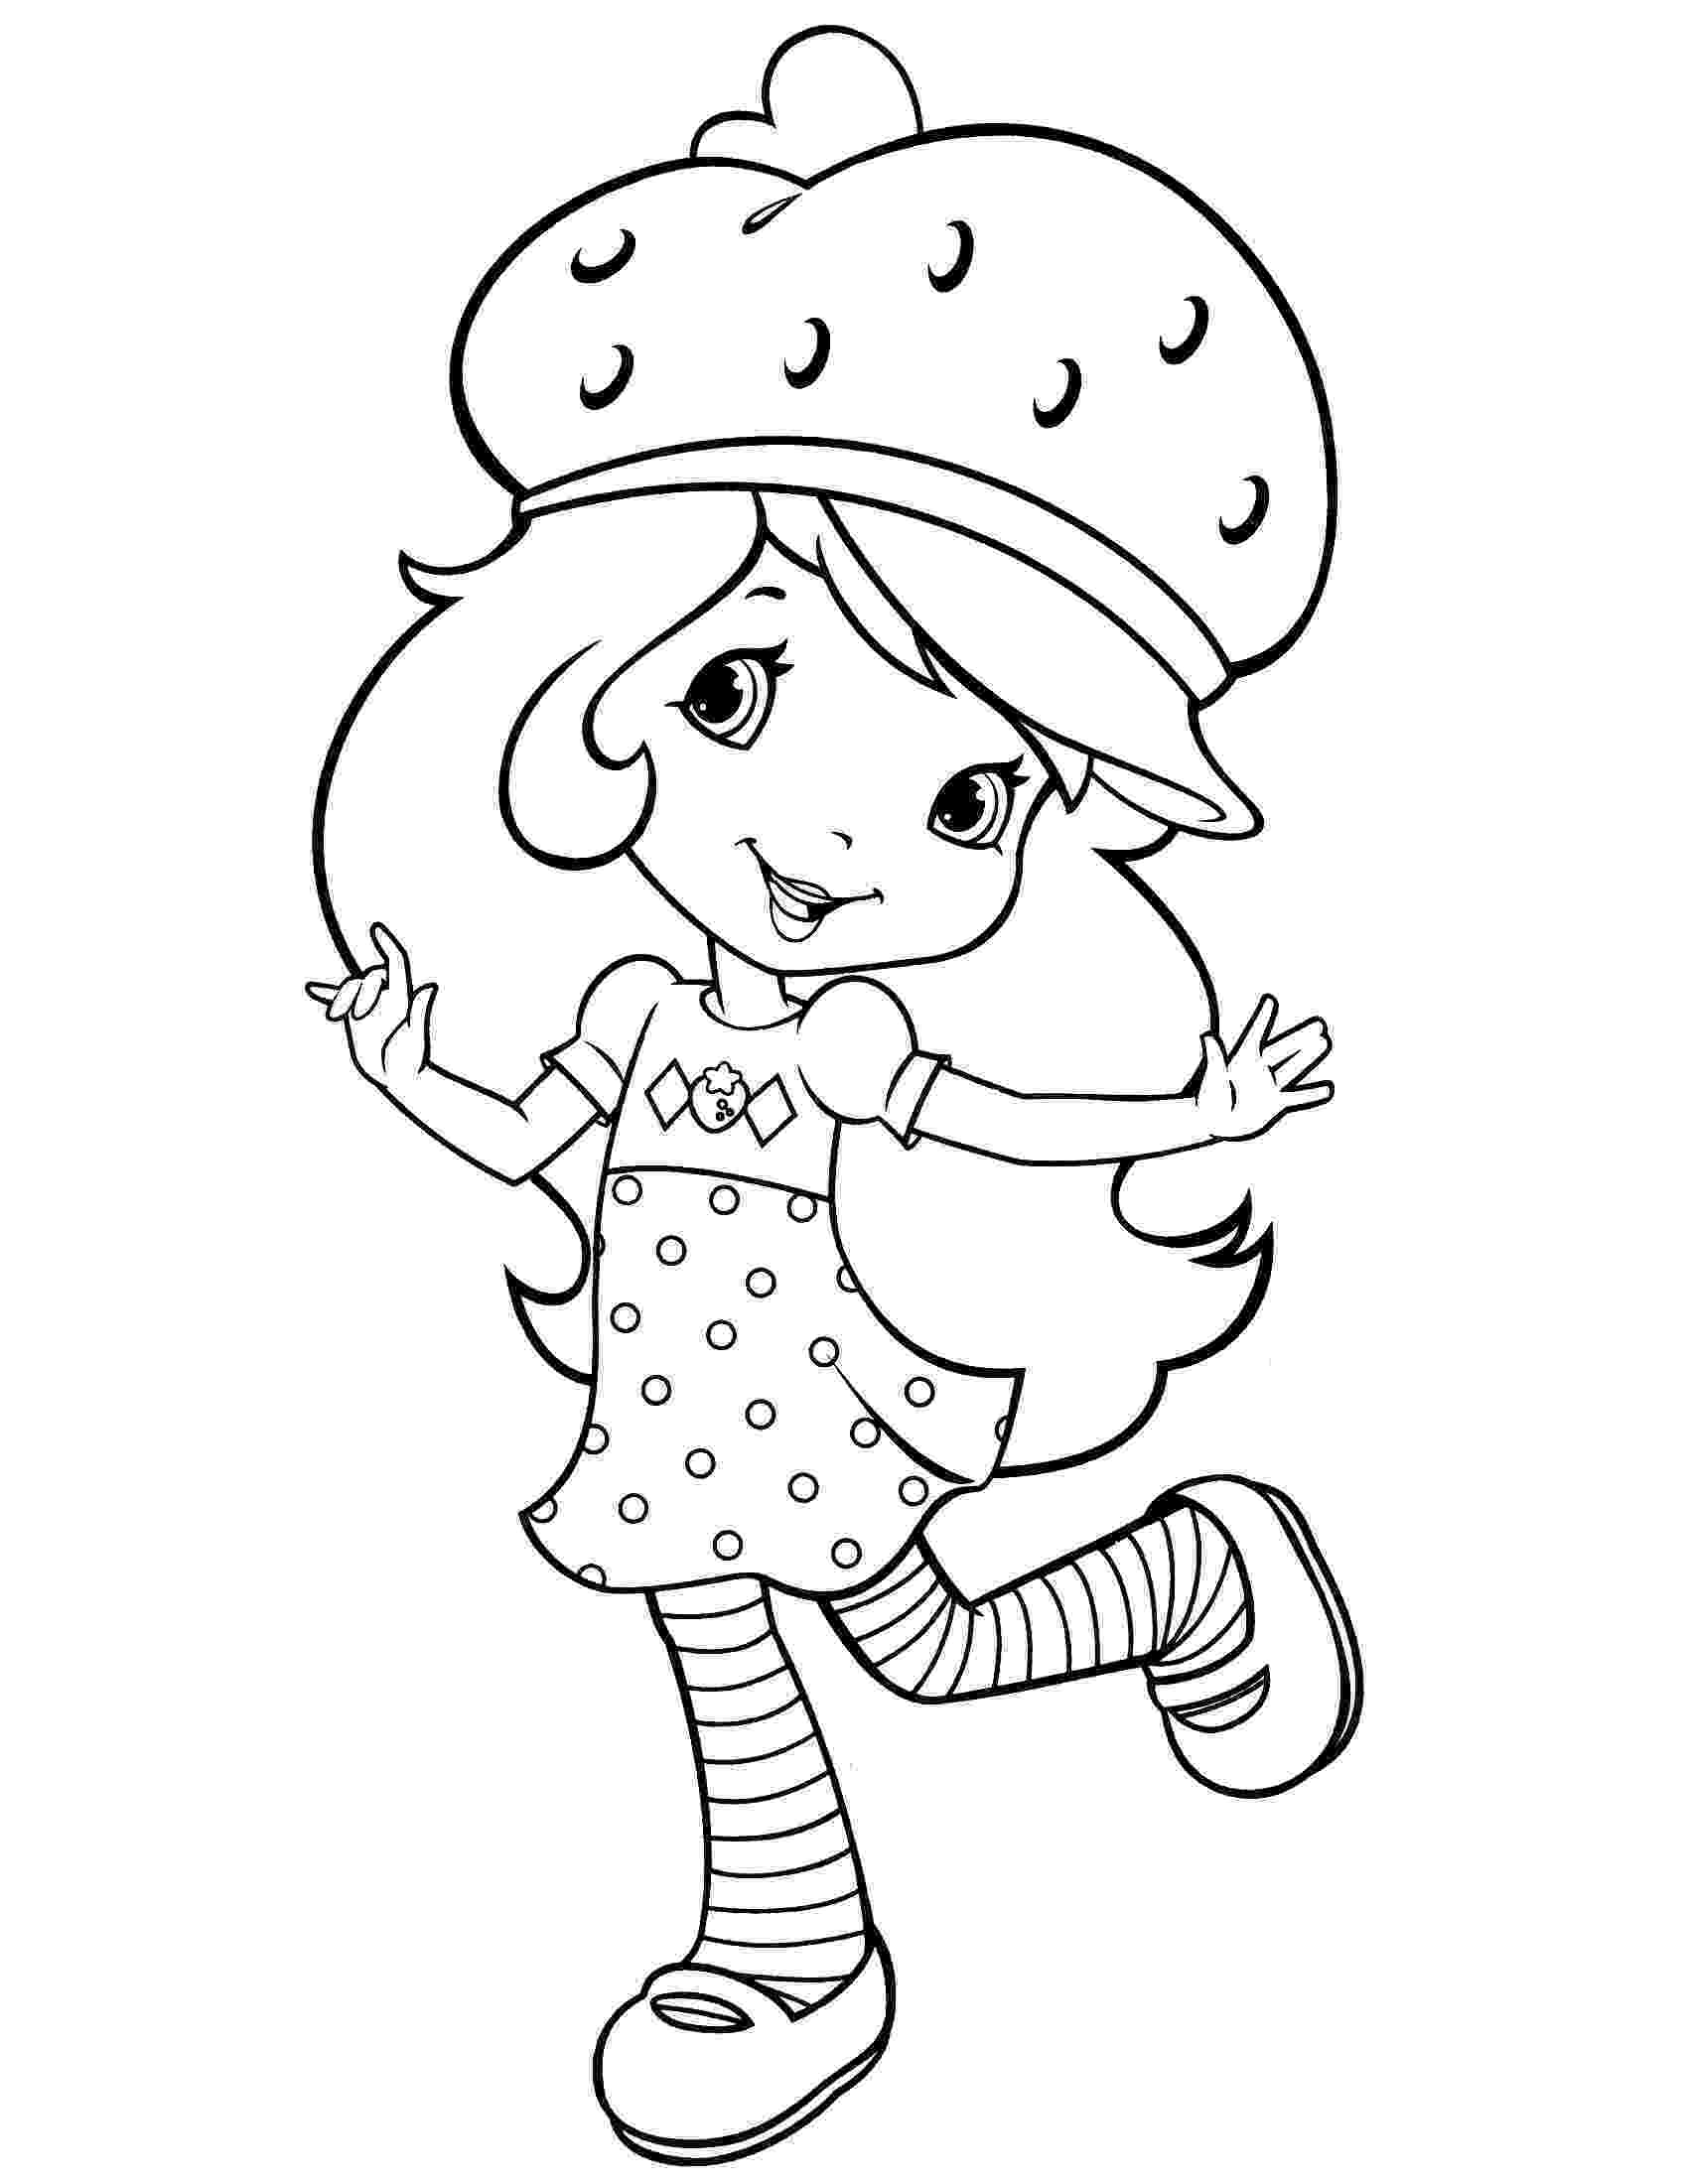 strawberry shortcake coloring pictures strawberry shortcake coloring page princess coloring shortcake coloring strawberry pictures